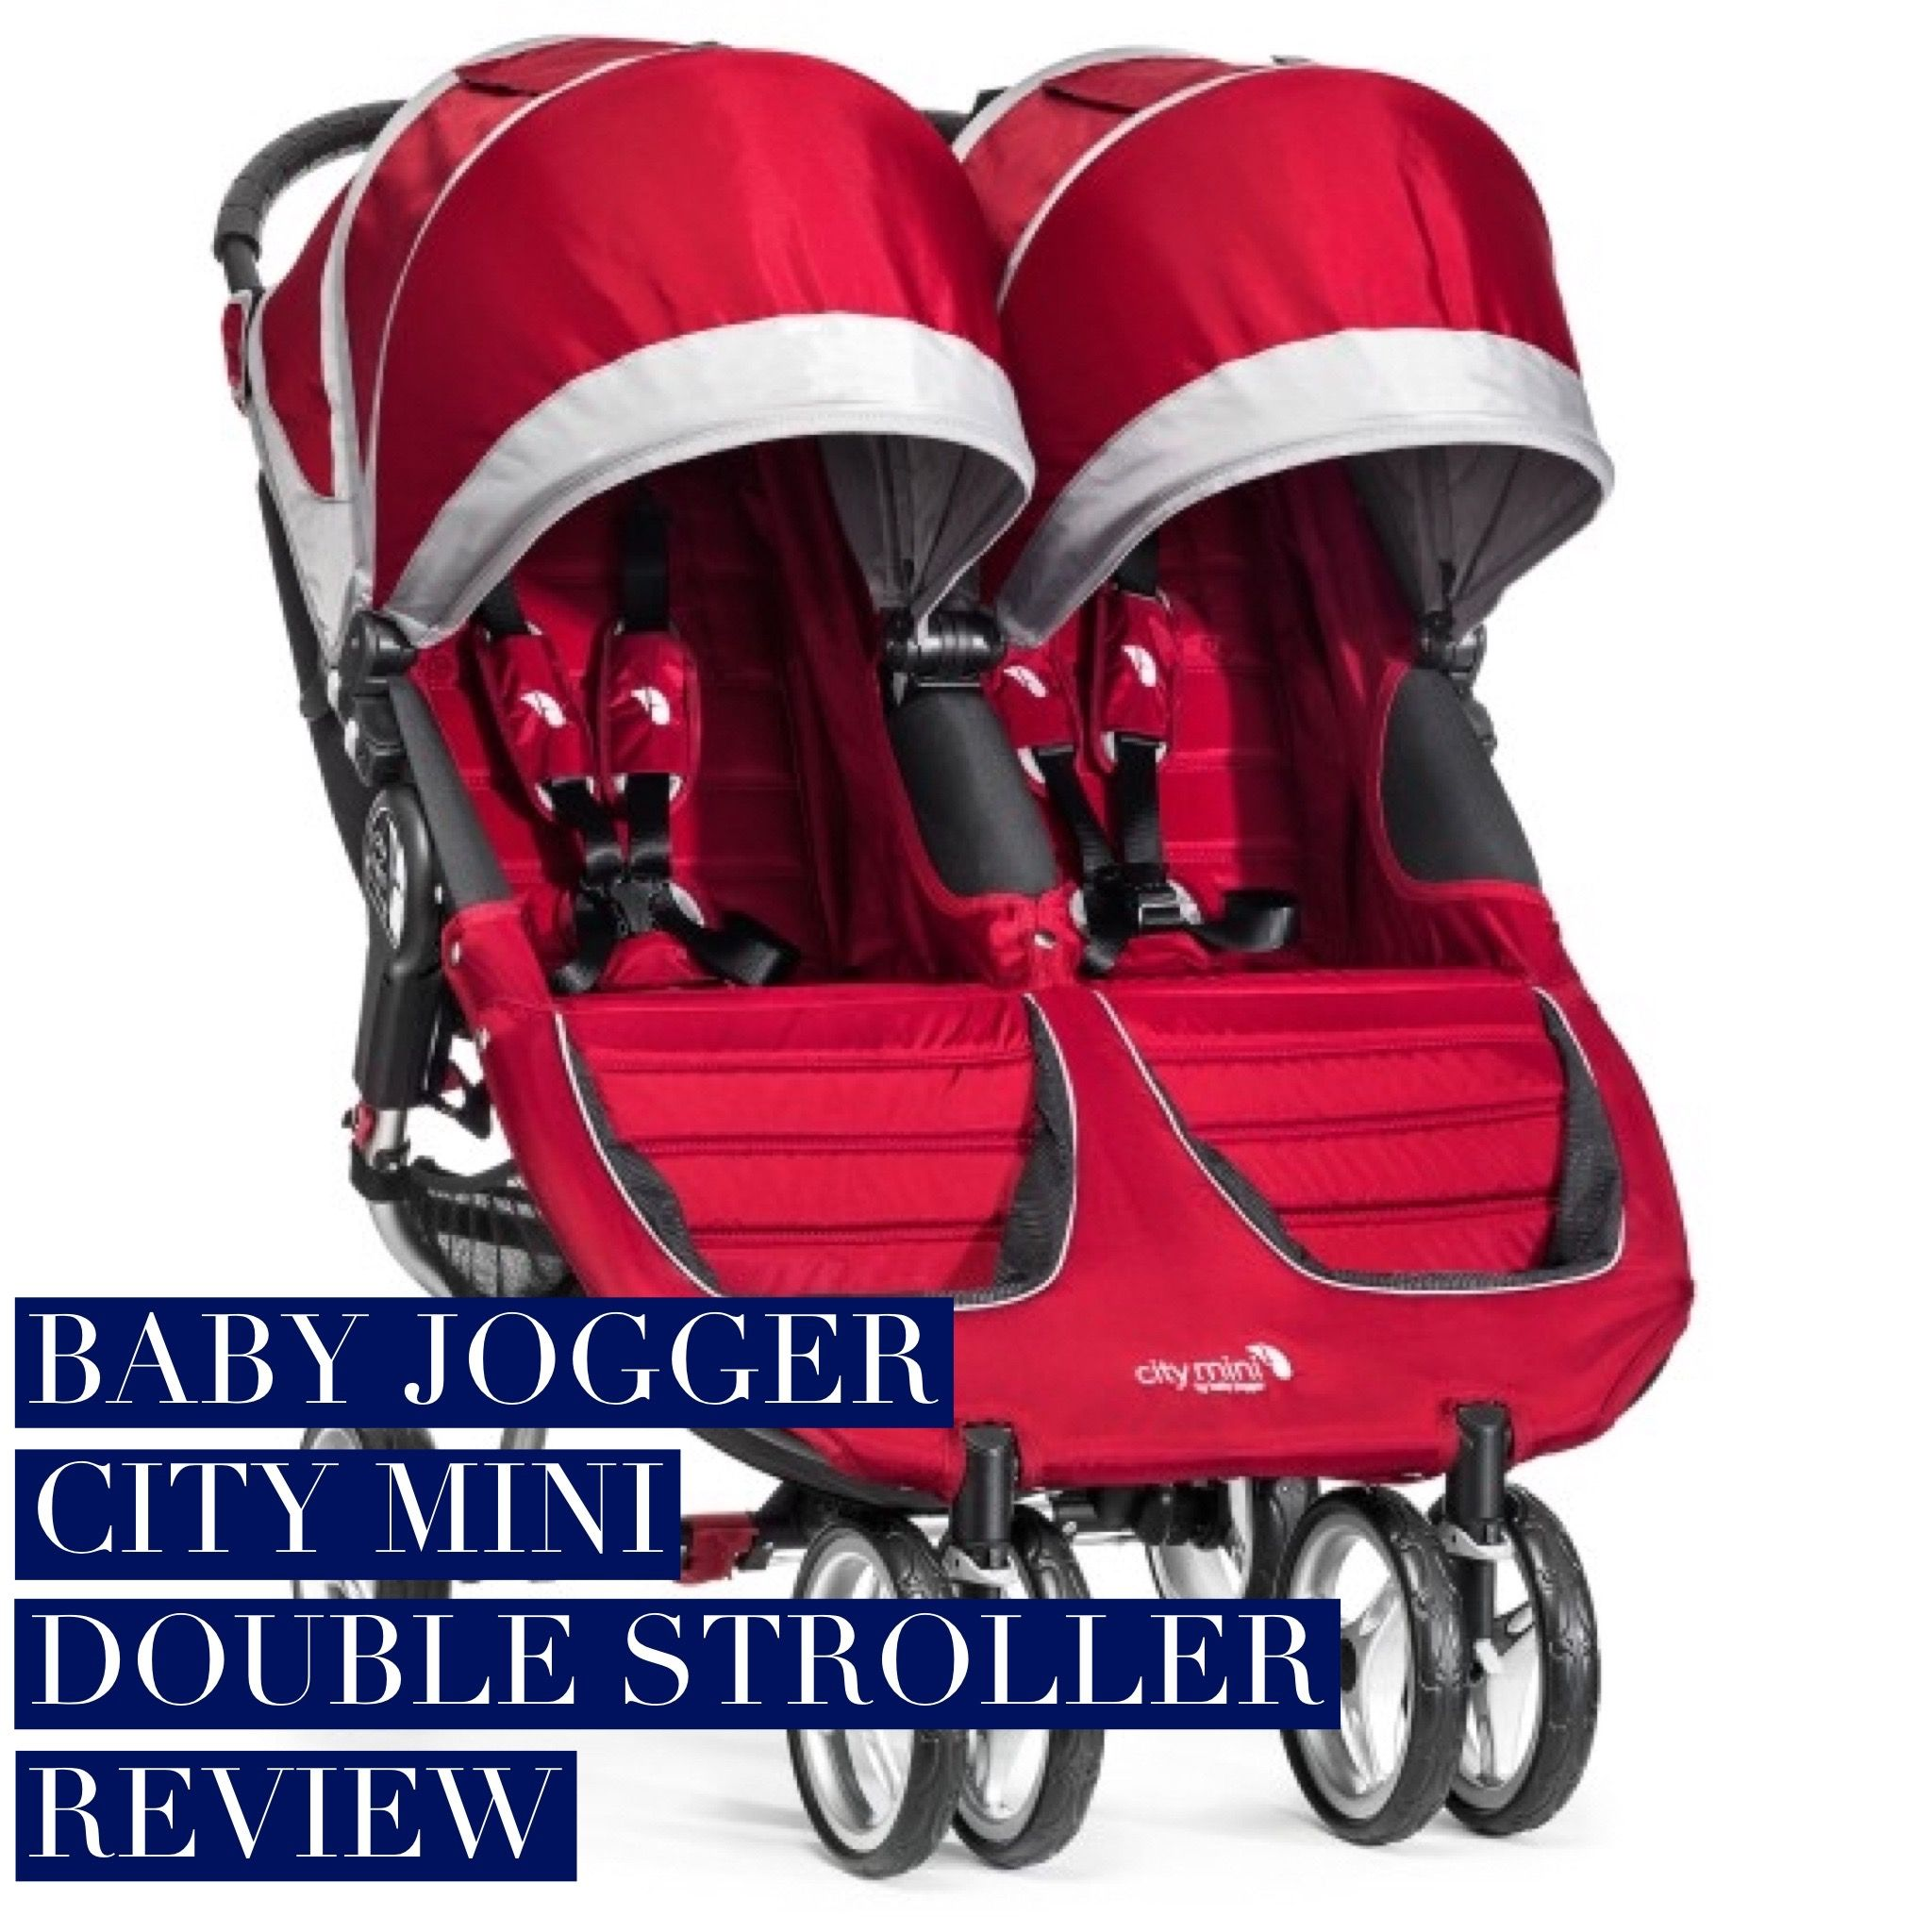 Baby Jogger City Mini Double Stroller Review City mini